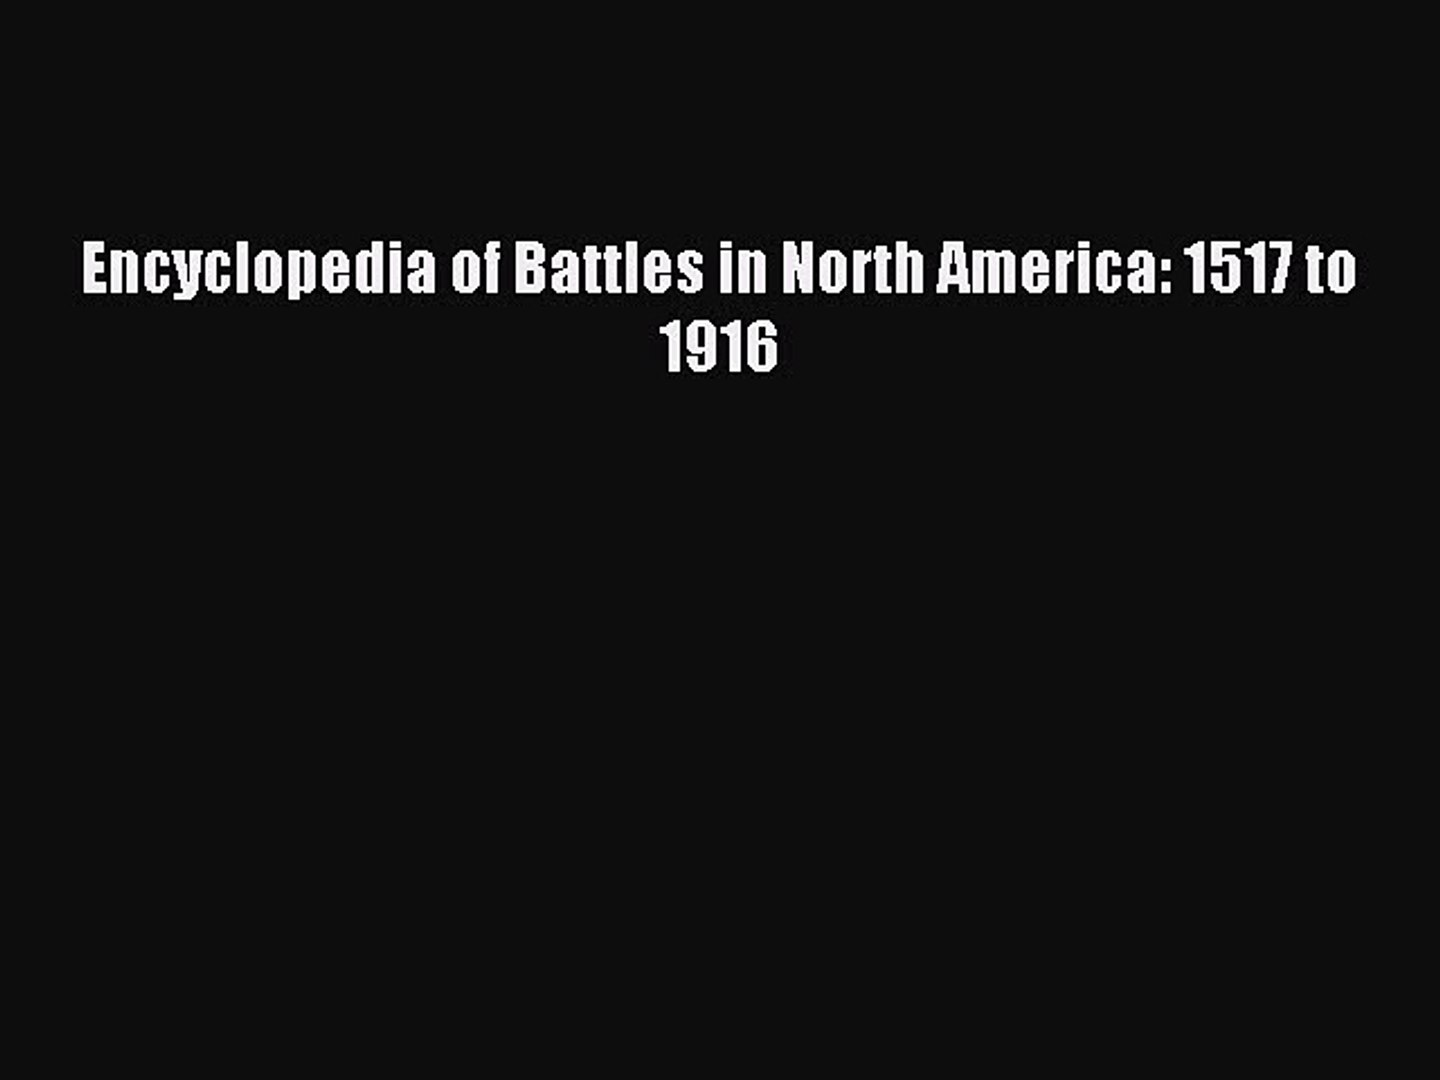 Download Encyclopedia of Battles in North America: 1517 to 1916 PDF Free